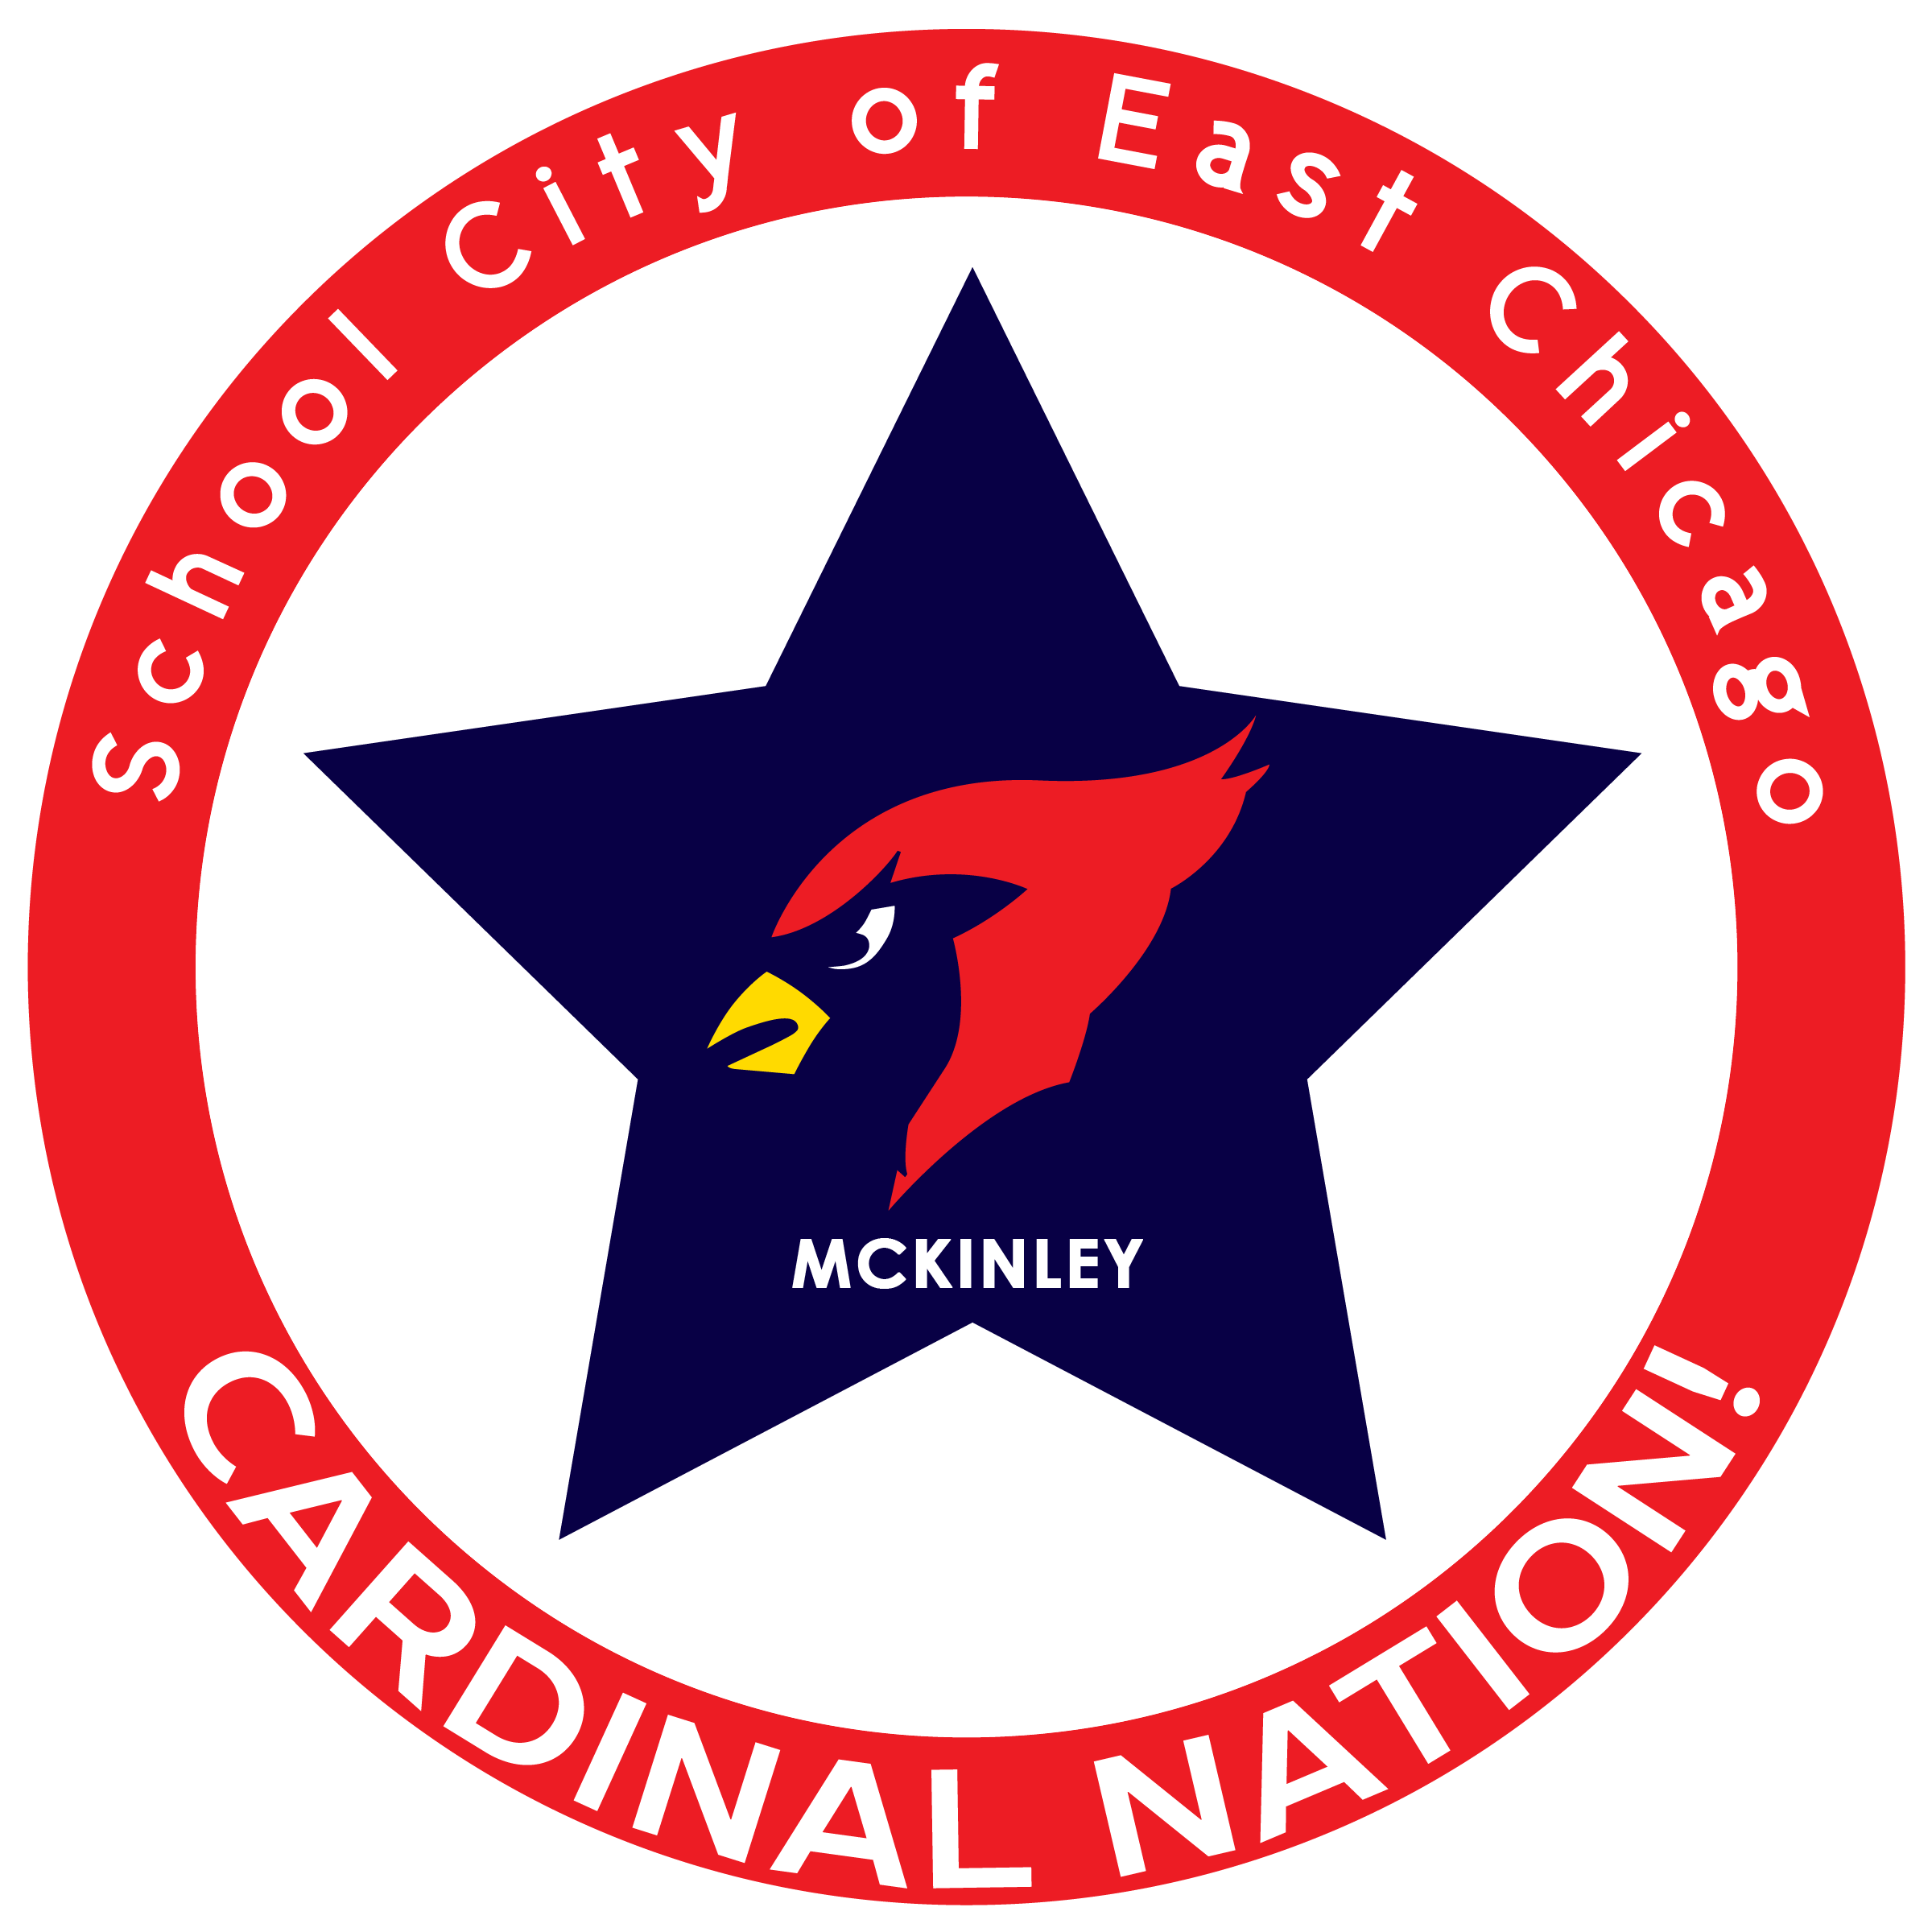 McKinley Elementary School Home Page